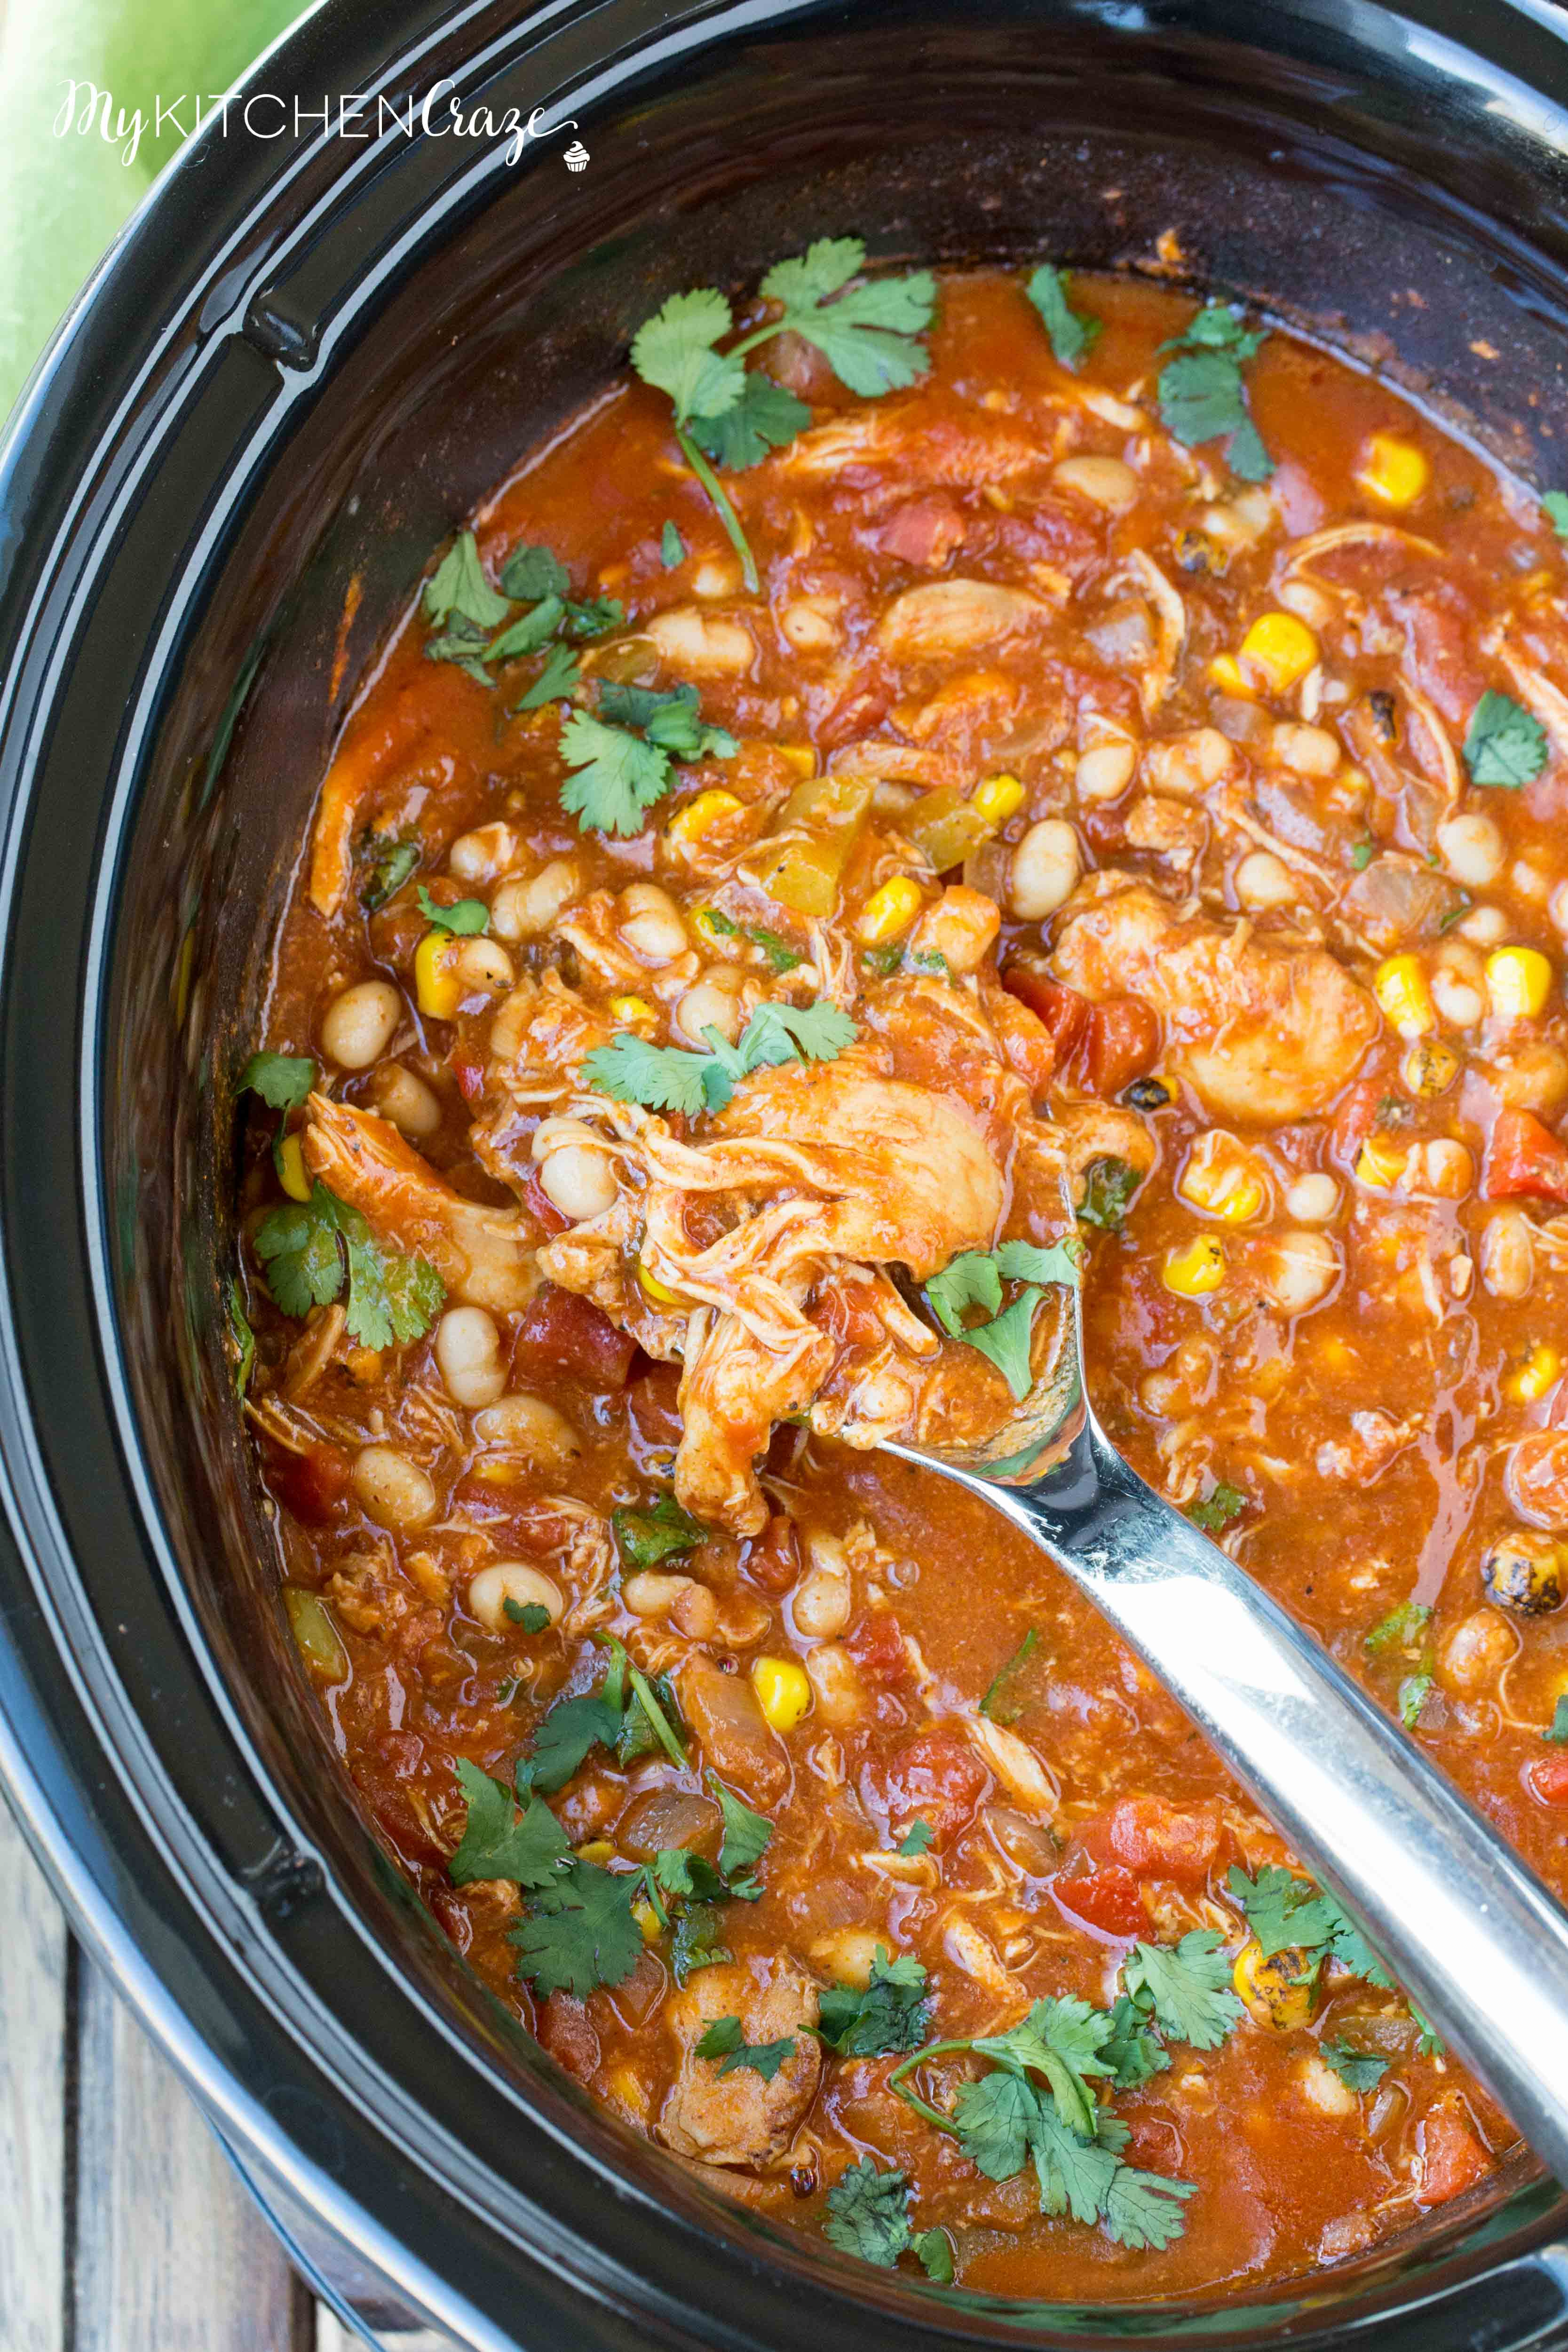 Slow Cooker Spanish Chicken ~ mykitchencraze.com ~ Put everything in the slow cooker and come home to a delicious meal waiting for you! Perfect with a side of rice or mashed potatoes!